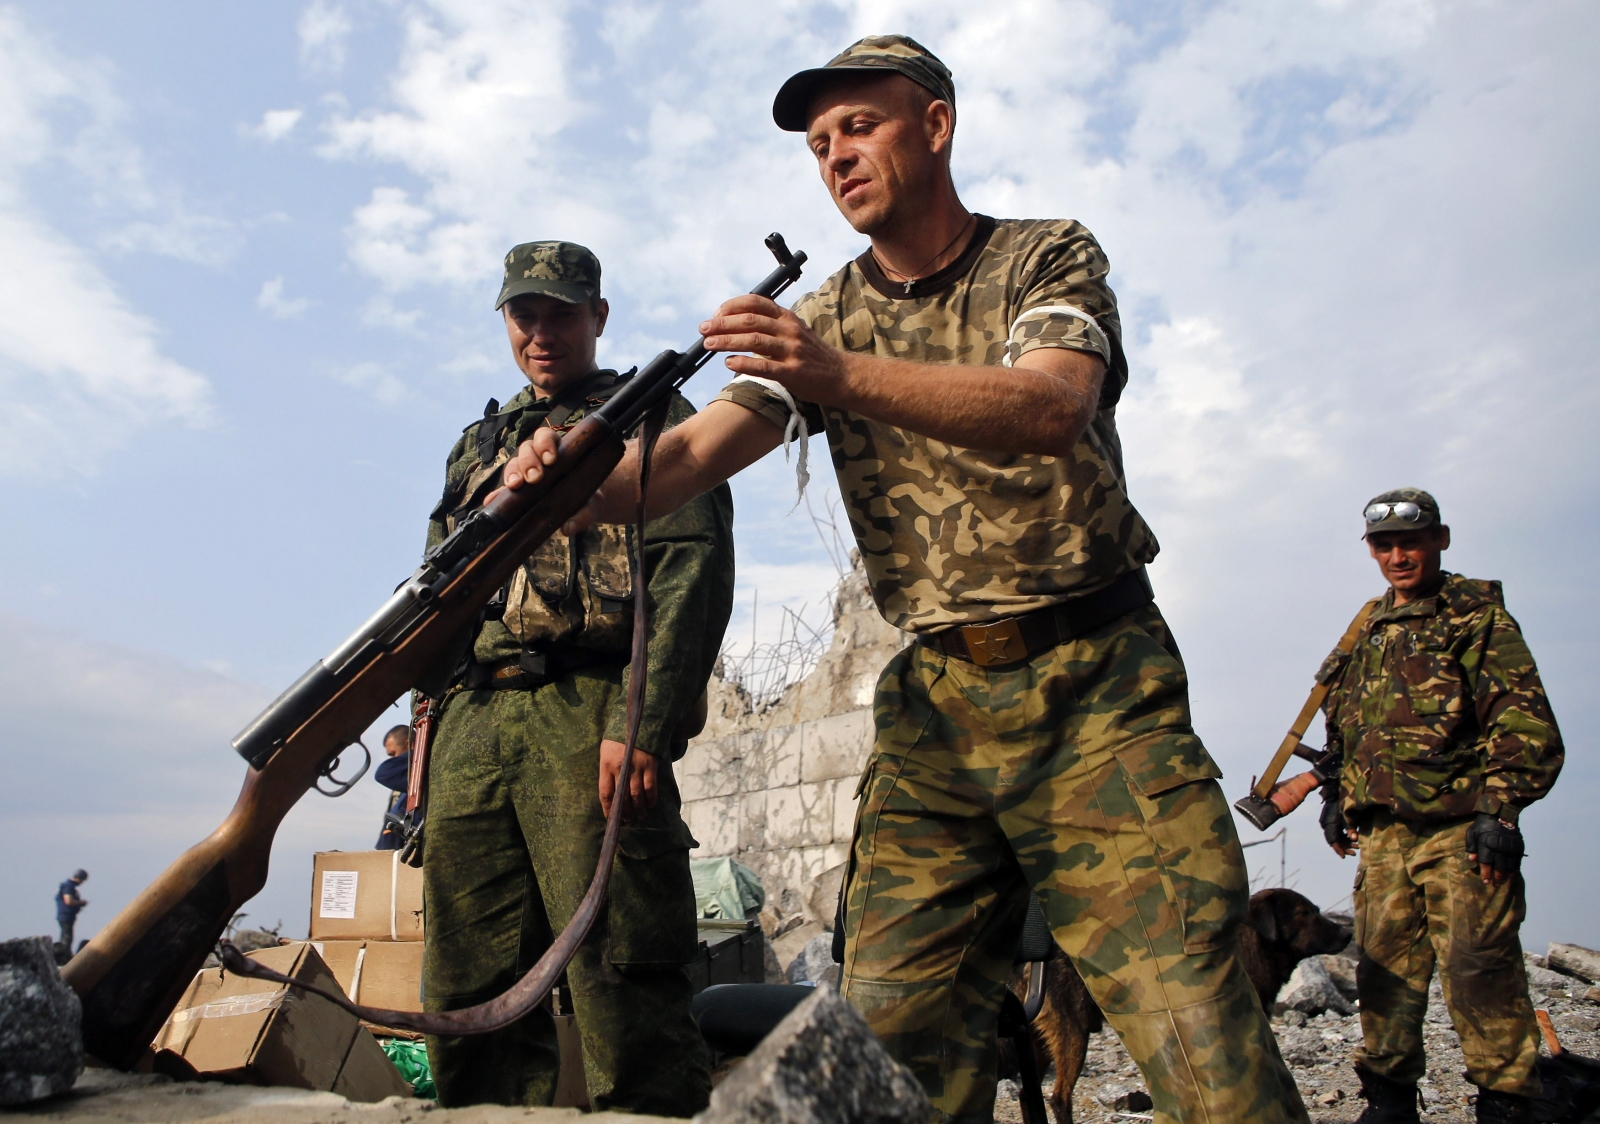 Russia Begins 'Full-Scale Invasion' of Ukraine as World Leaders Scramble